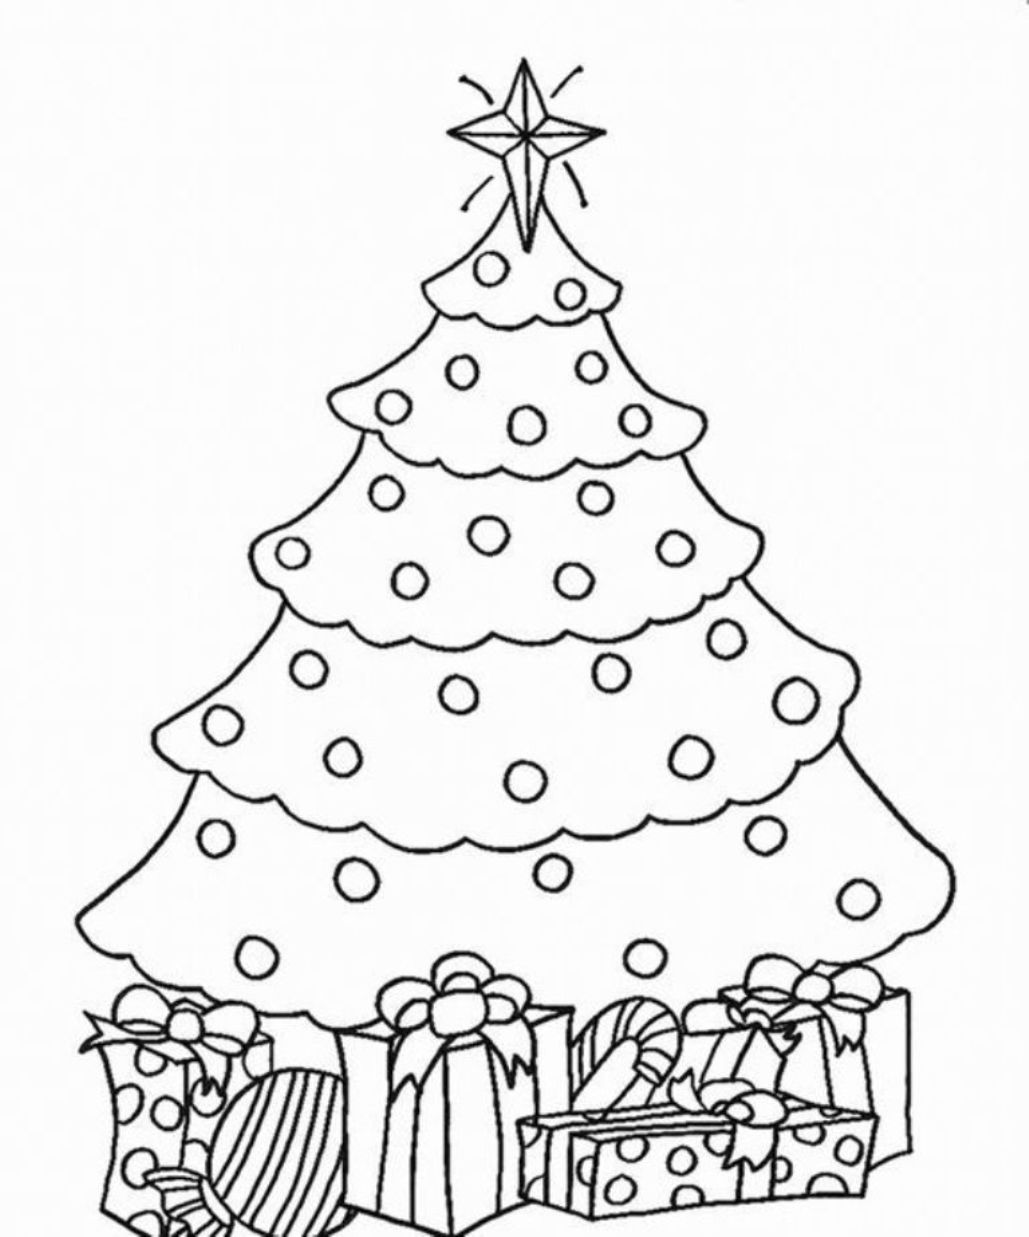 Kids Christmas Tree Coloring Page At Getdrawings Com Free